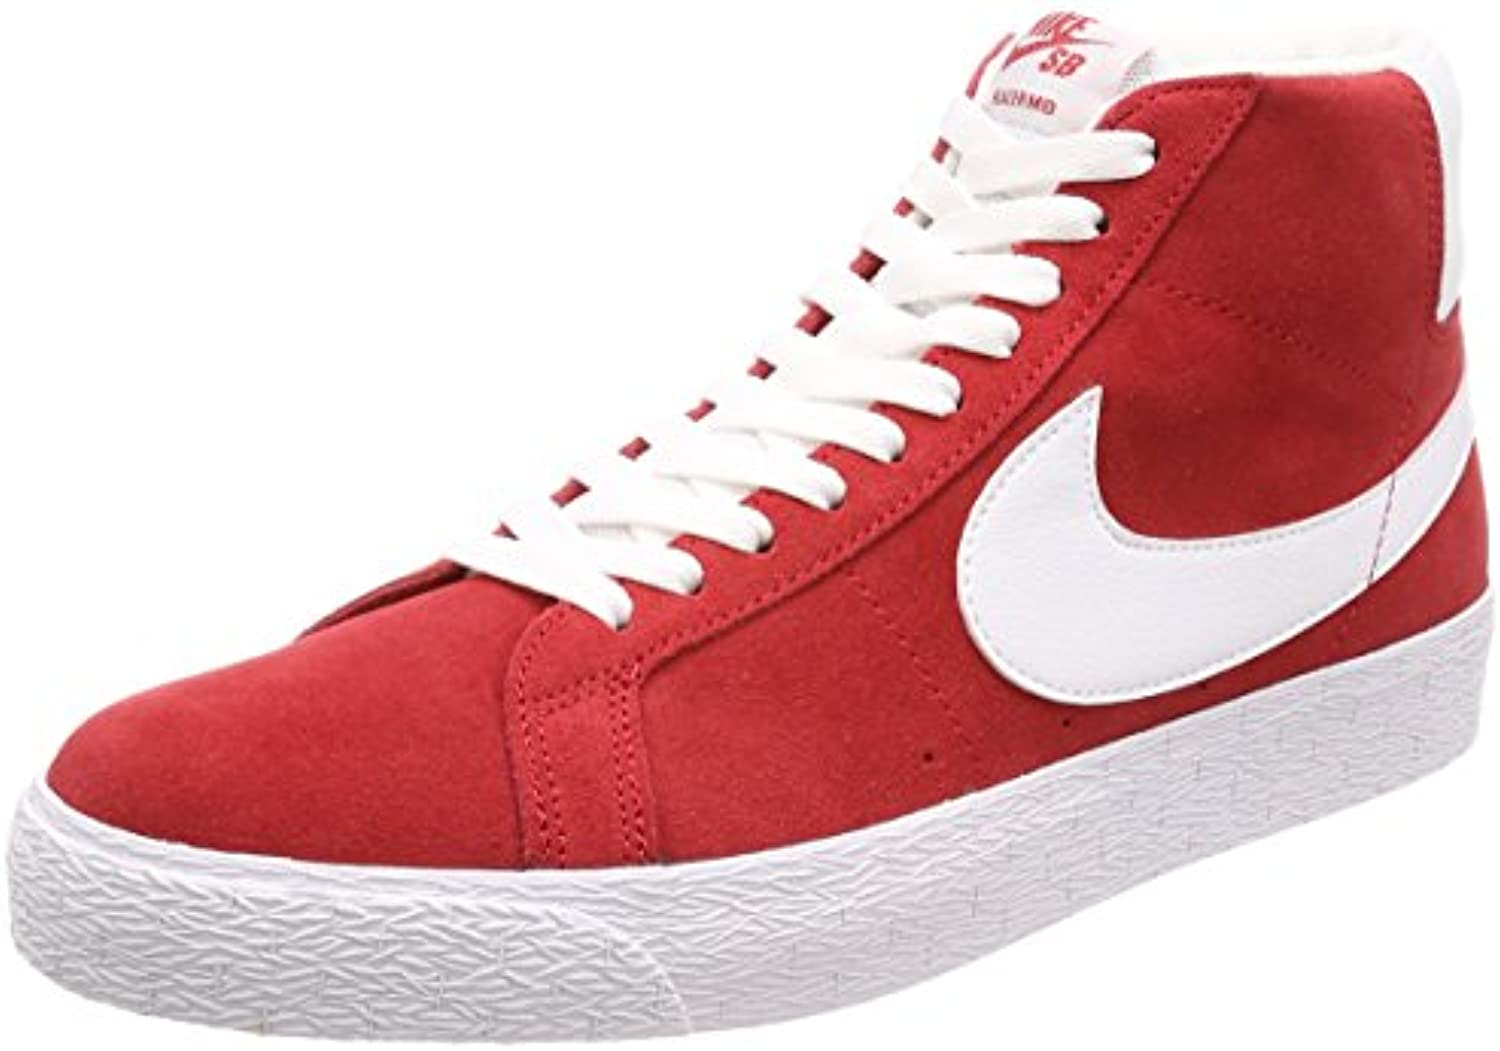 Nike SB Blazer Zoom Mid University Red/White